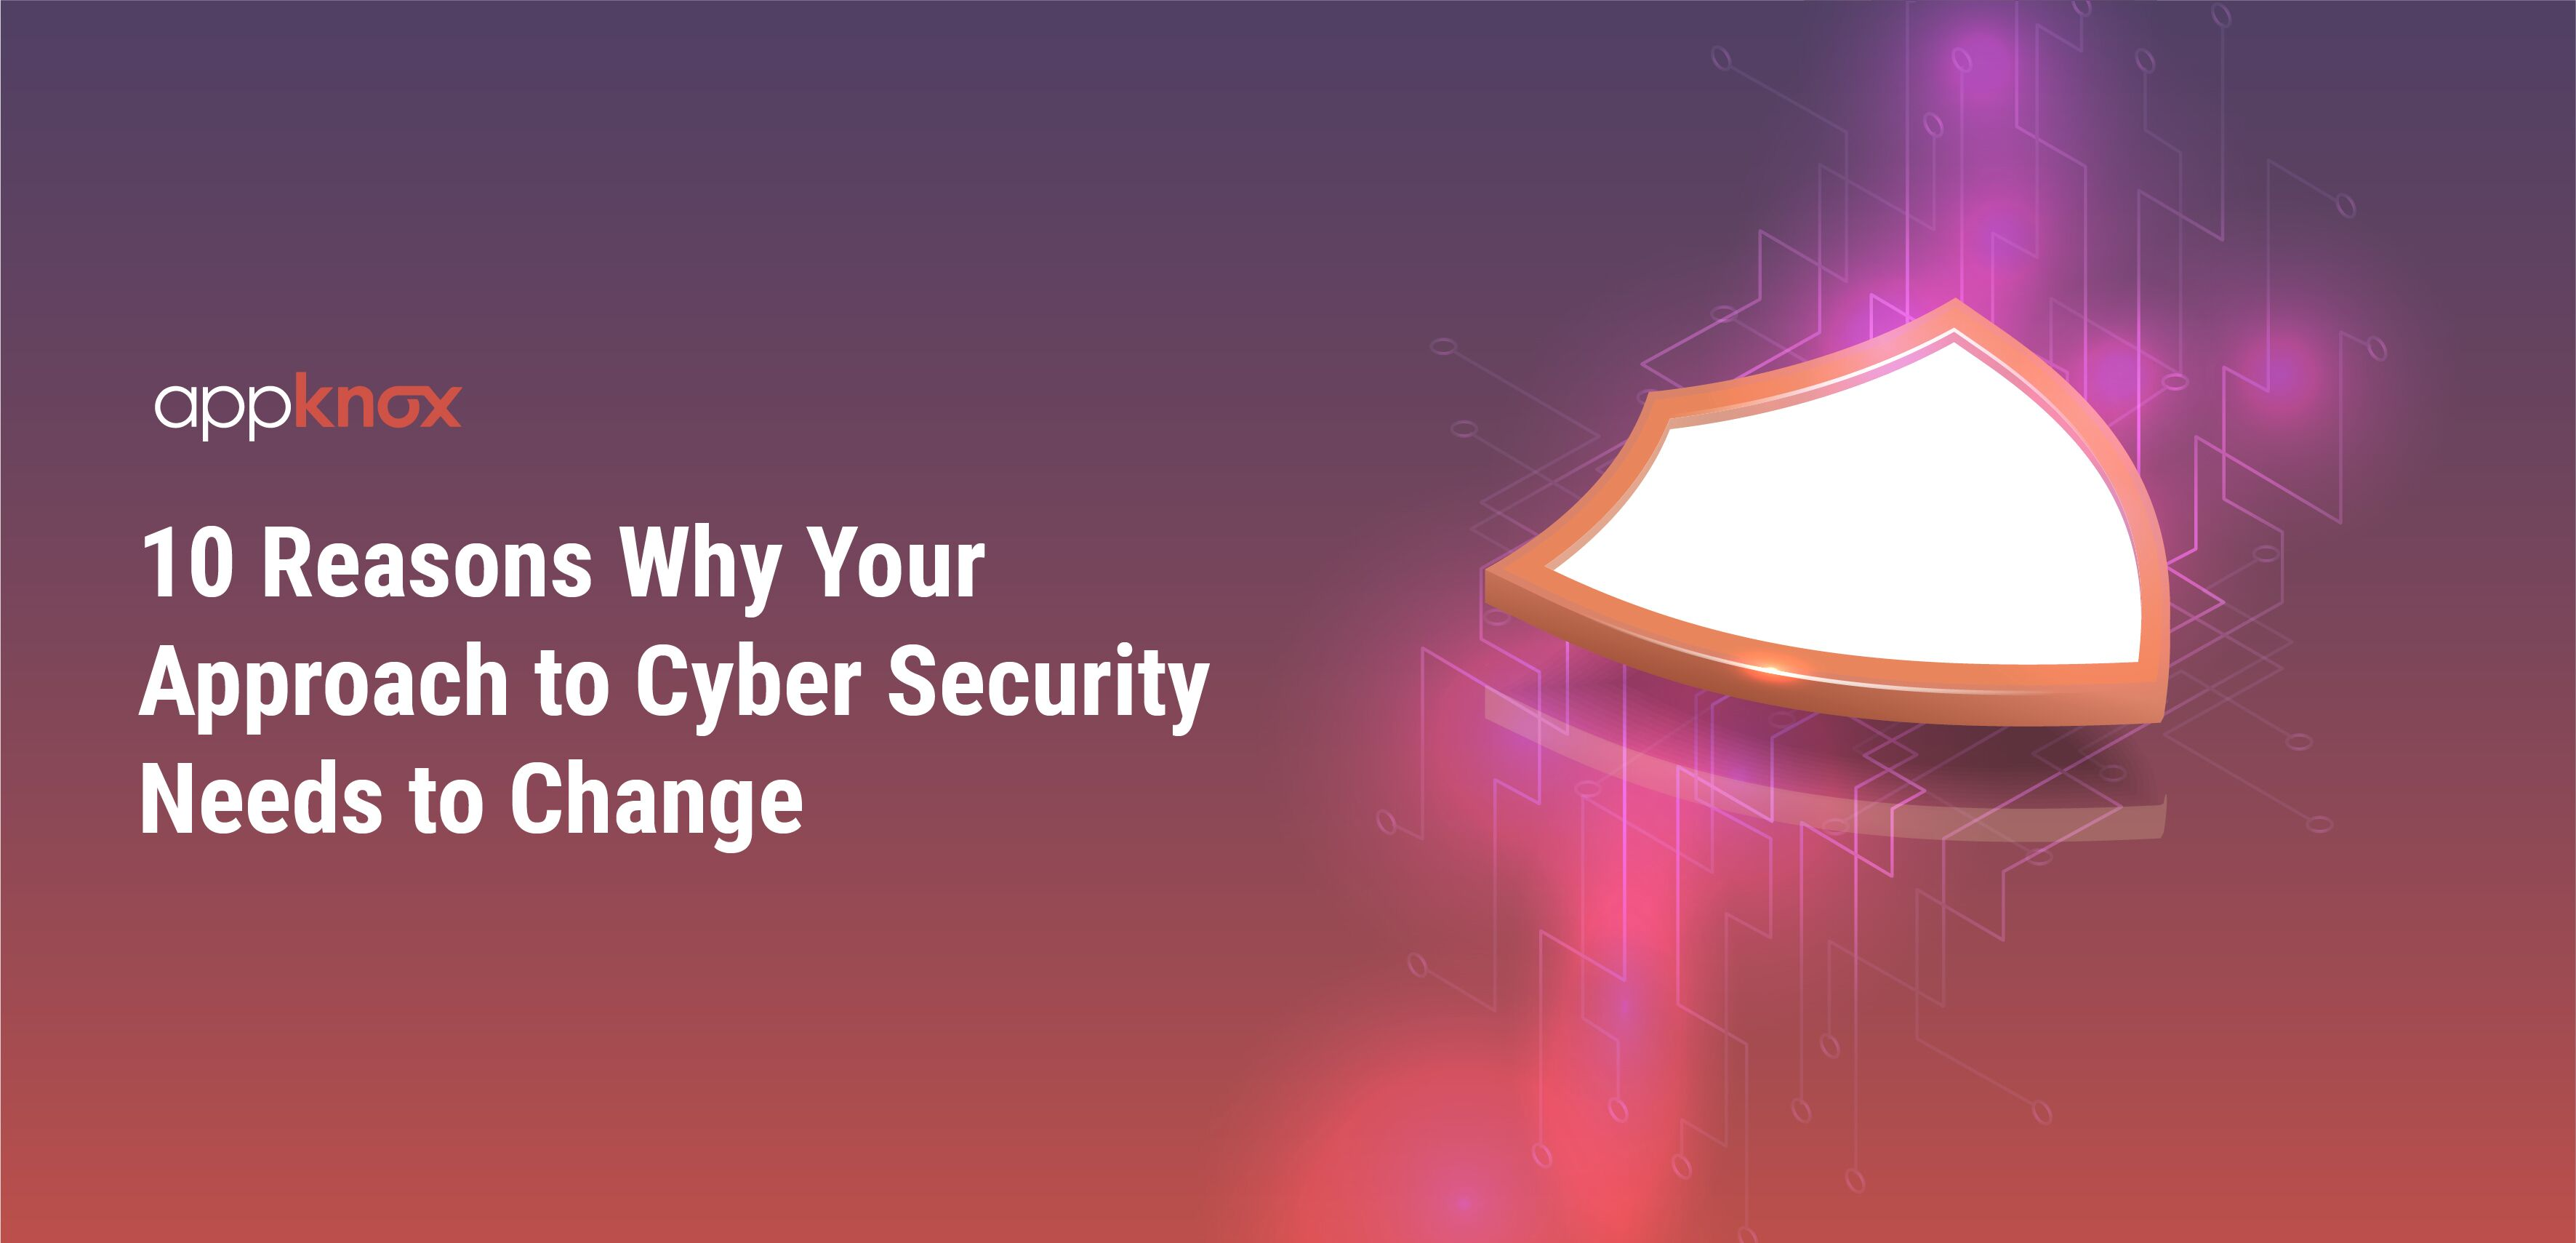 10 Reasons Why Your Approach to Cybersecurity Needs to Change